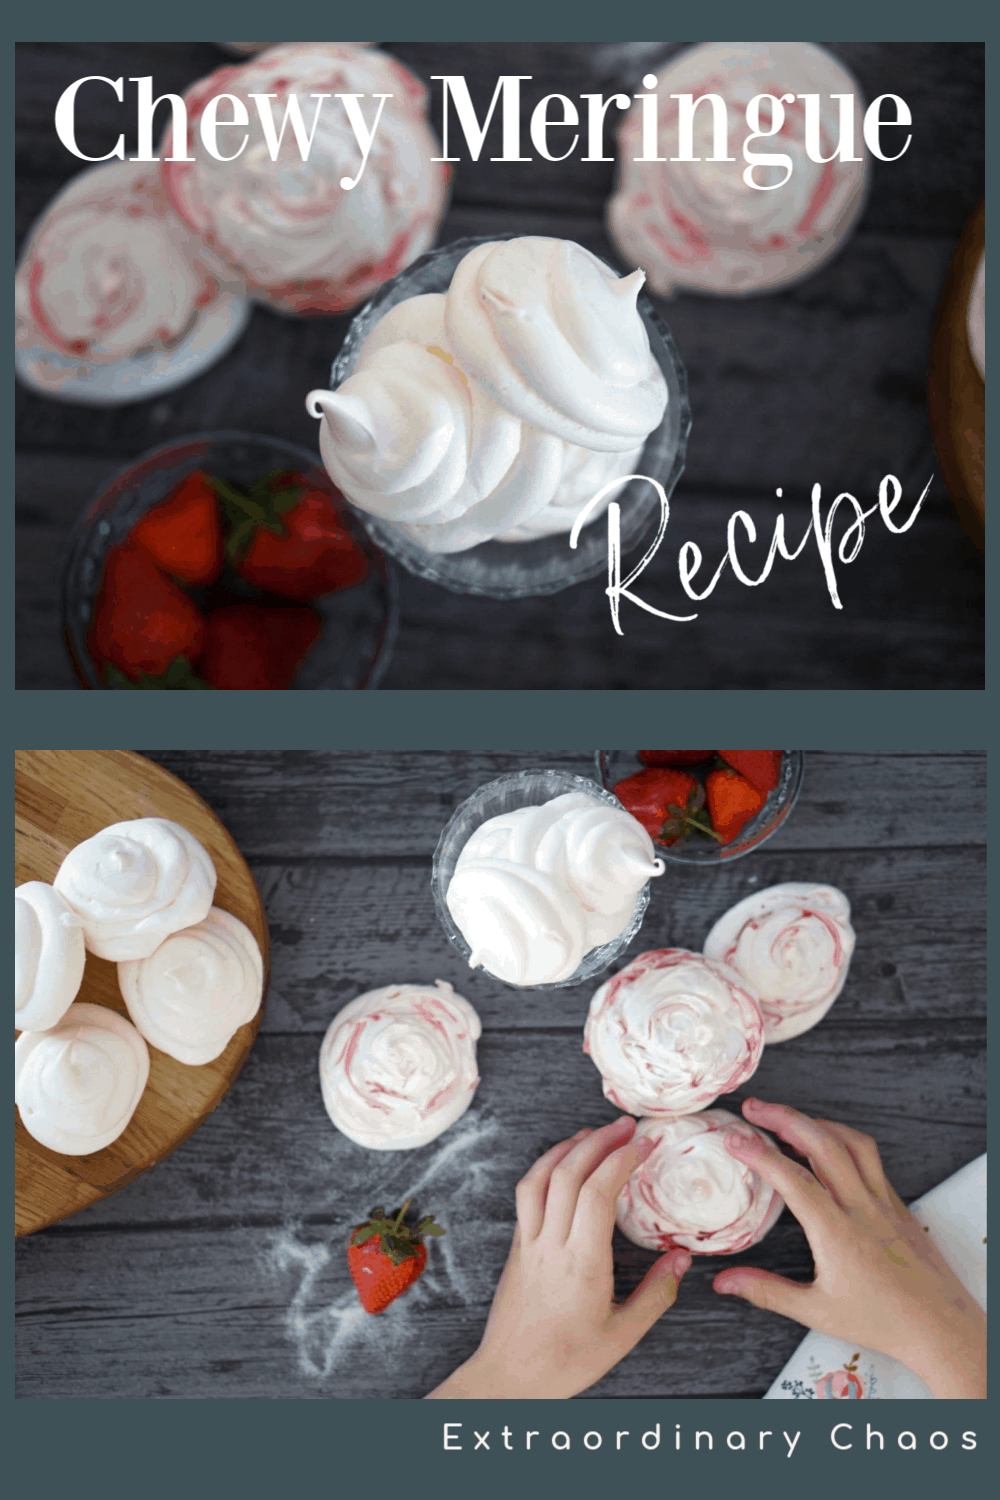 Easy Chewy Meringue recipe with pink swirls